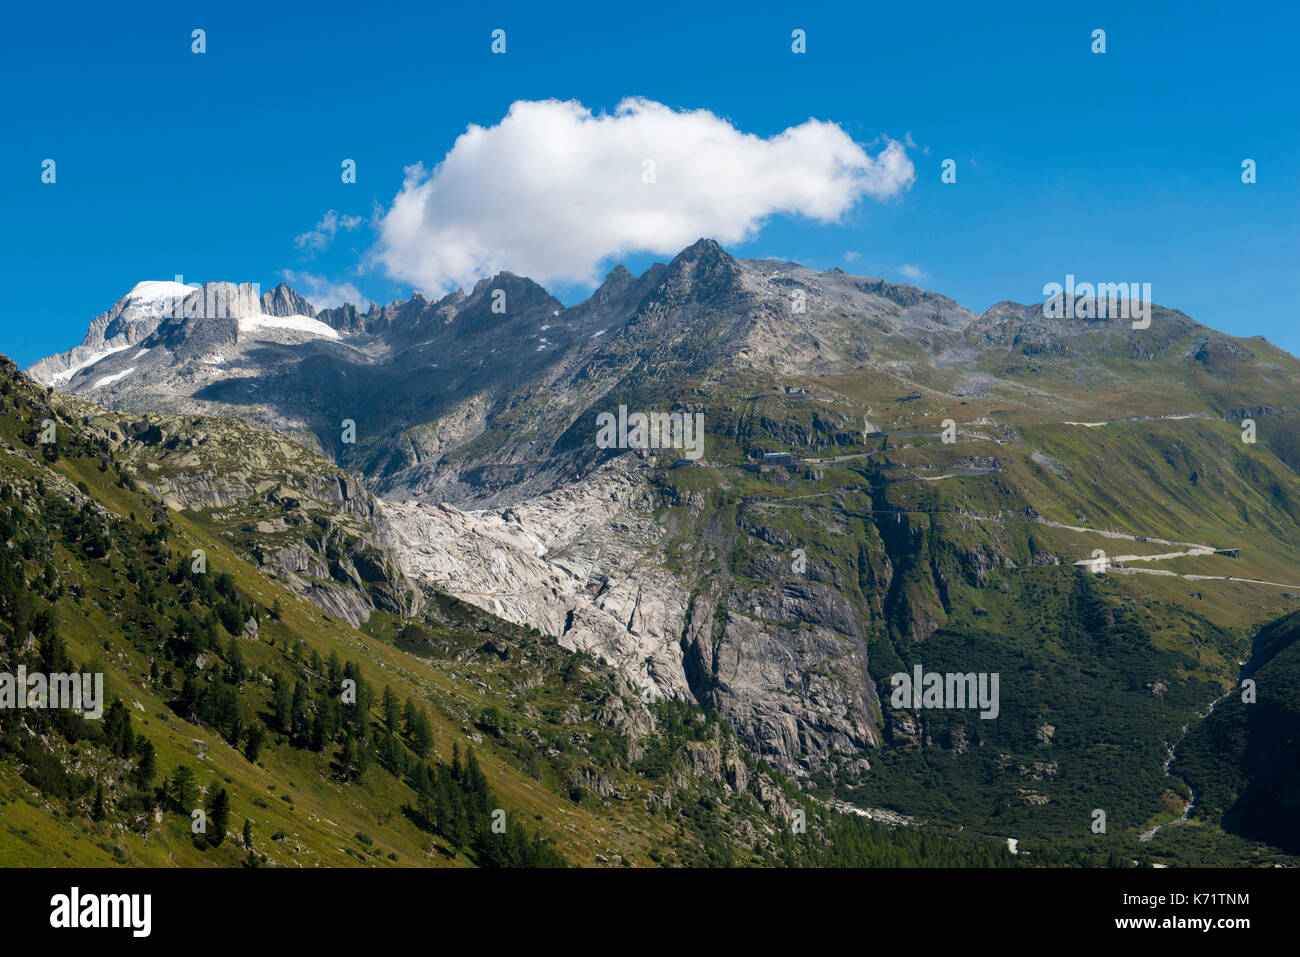 Furka pass road with Rhone glacier, view from Grimsel pass, Valais, Switzerland Stock Photo